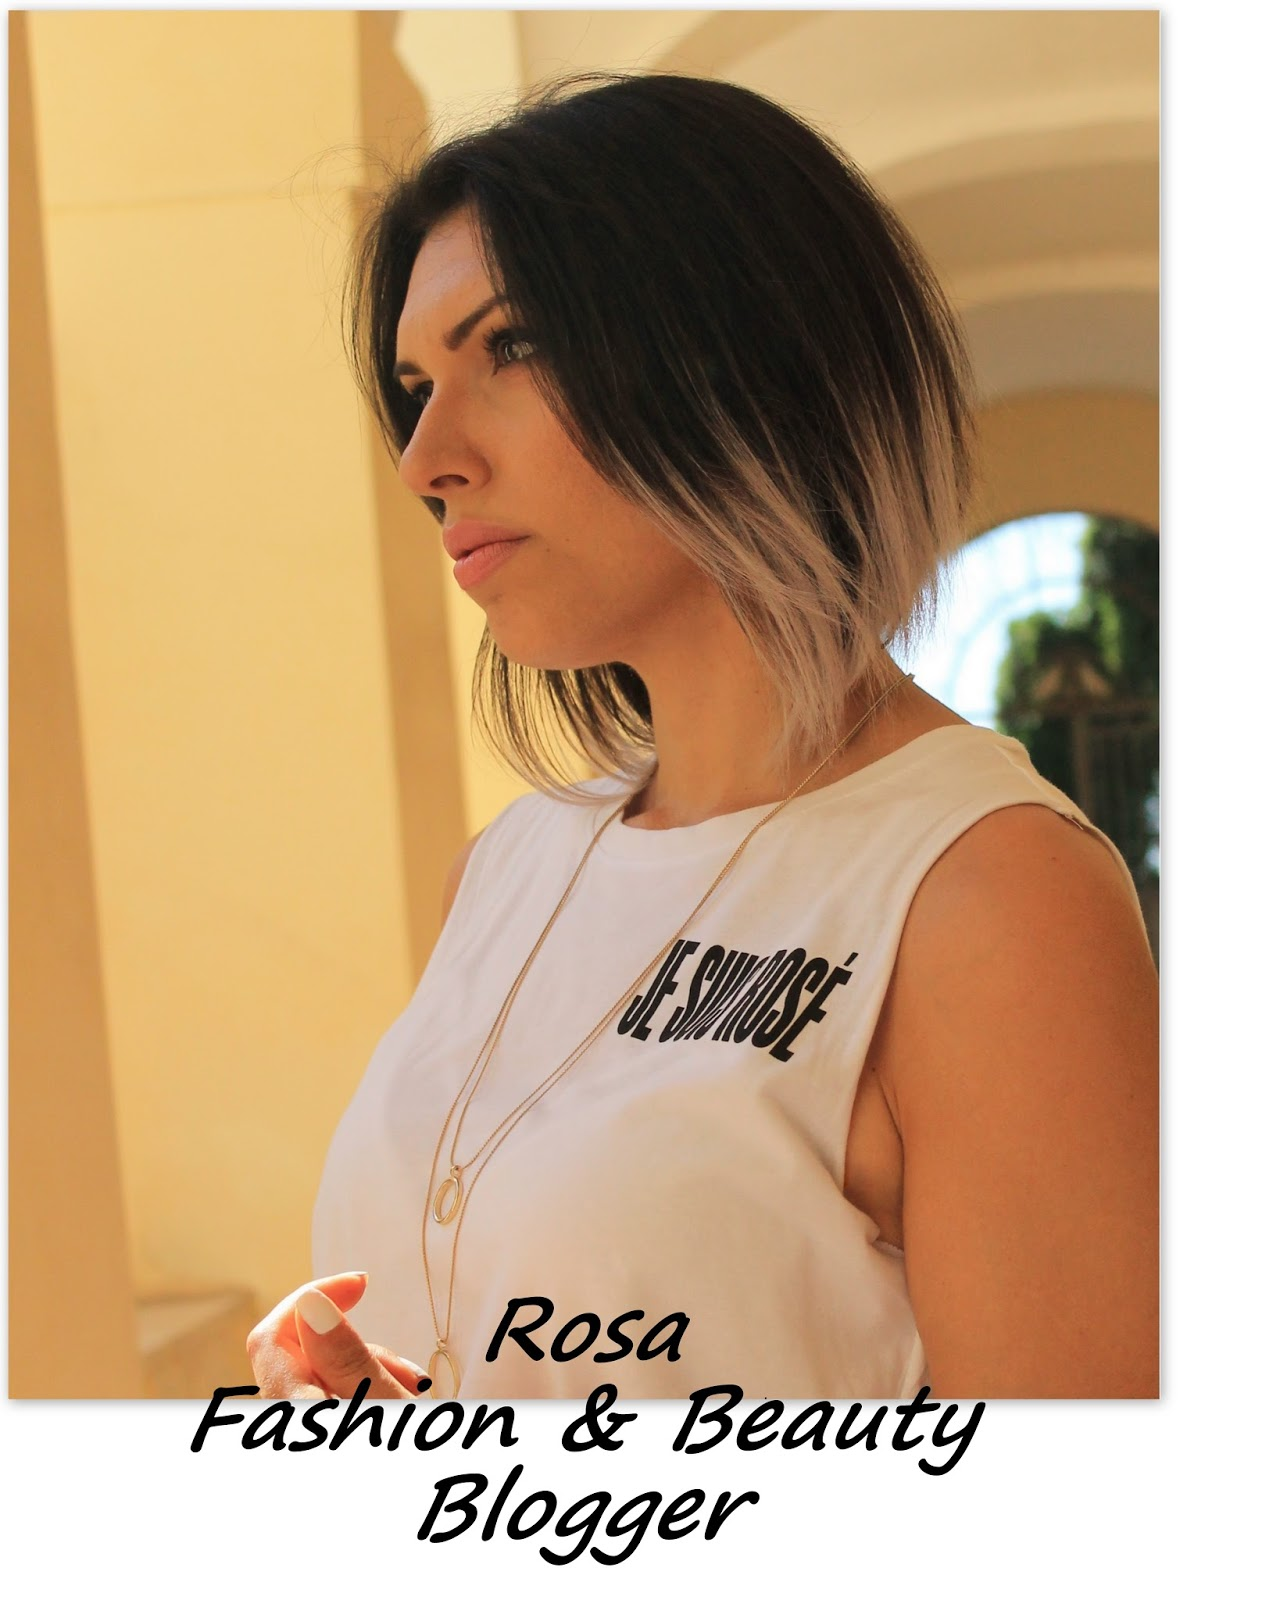 Rosa Fashion & Beauty blogger